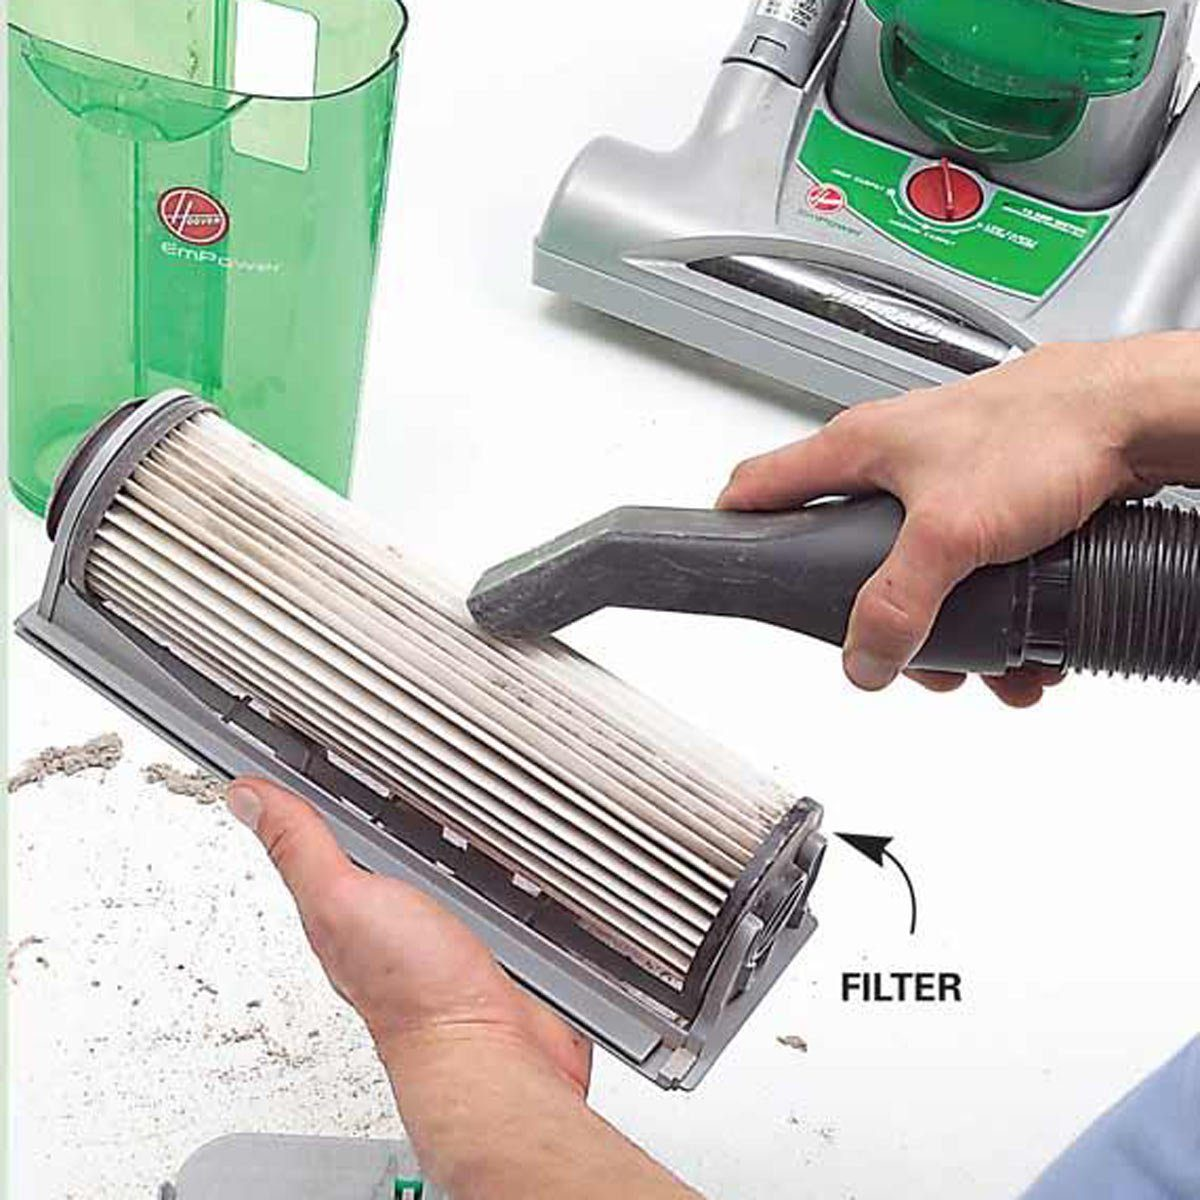 Cleaning vacuum filter